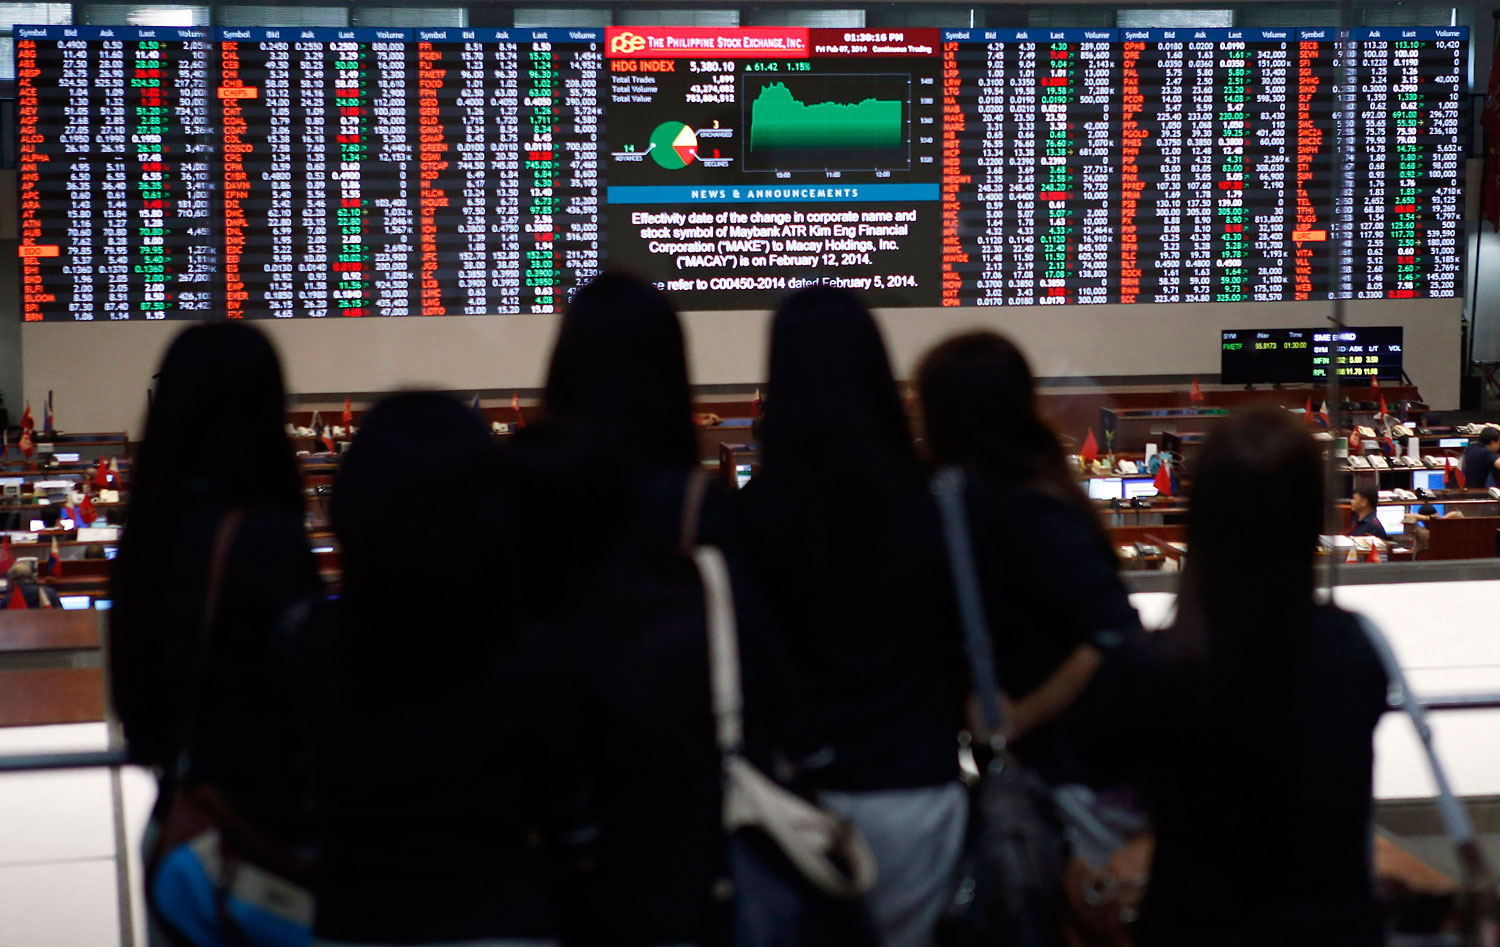 University interns monitor trading at the Philippine Stock Exchange in the financial district of Makati, Philippines, on Feb. 7, 2014